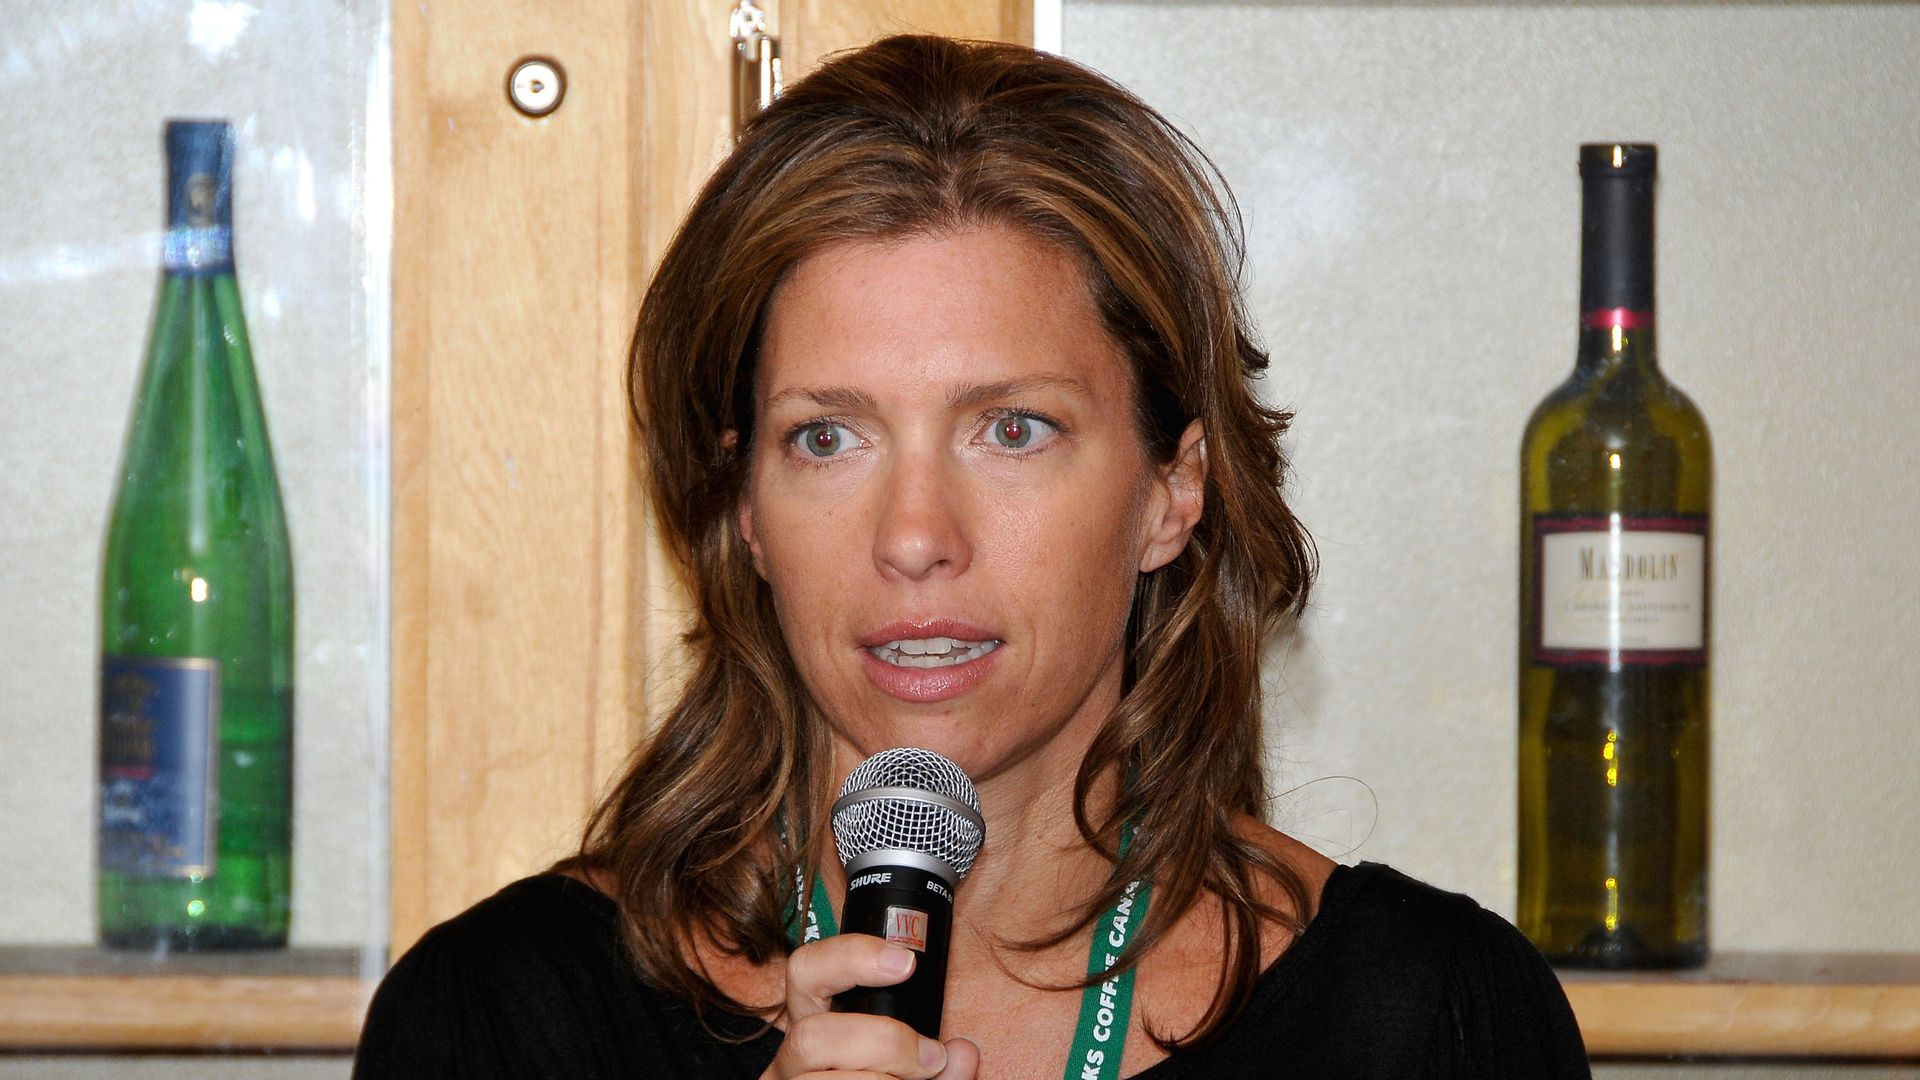 Christine Aylward at the 2009 Toronto International Film Festival.